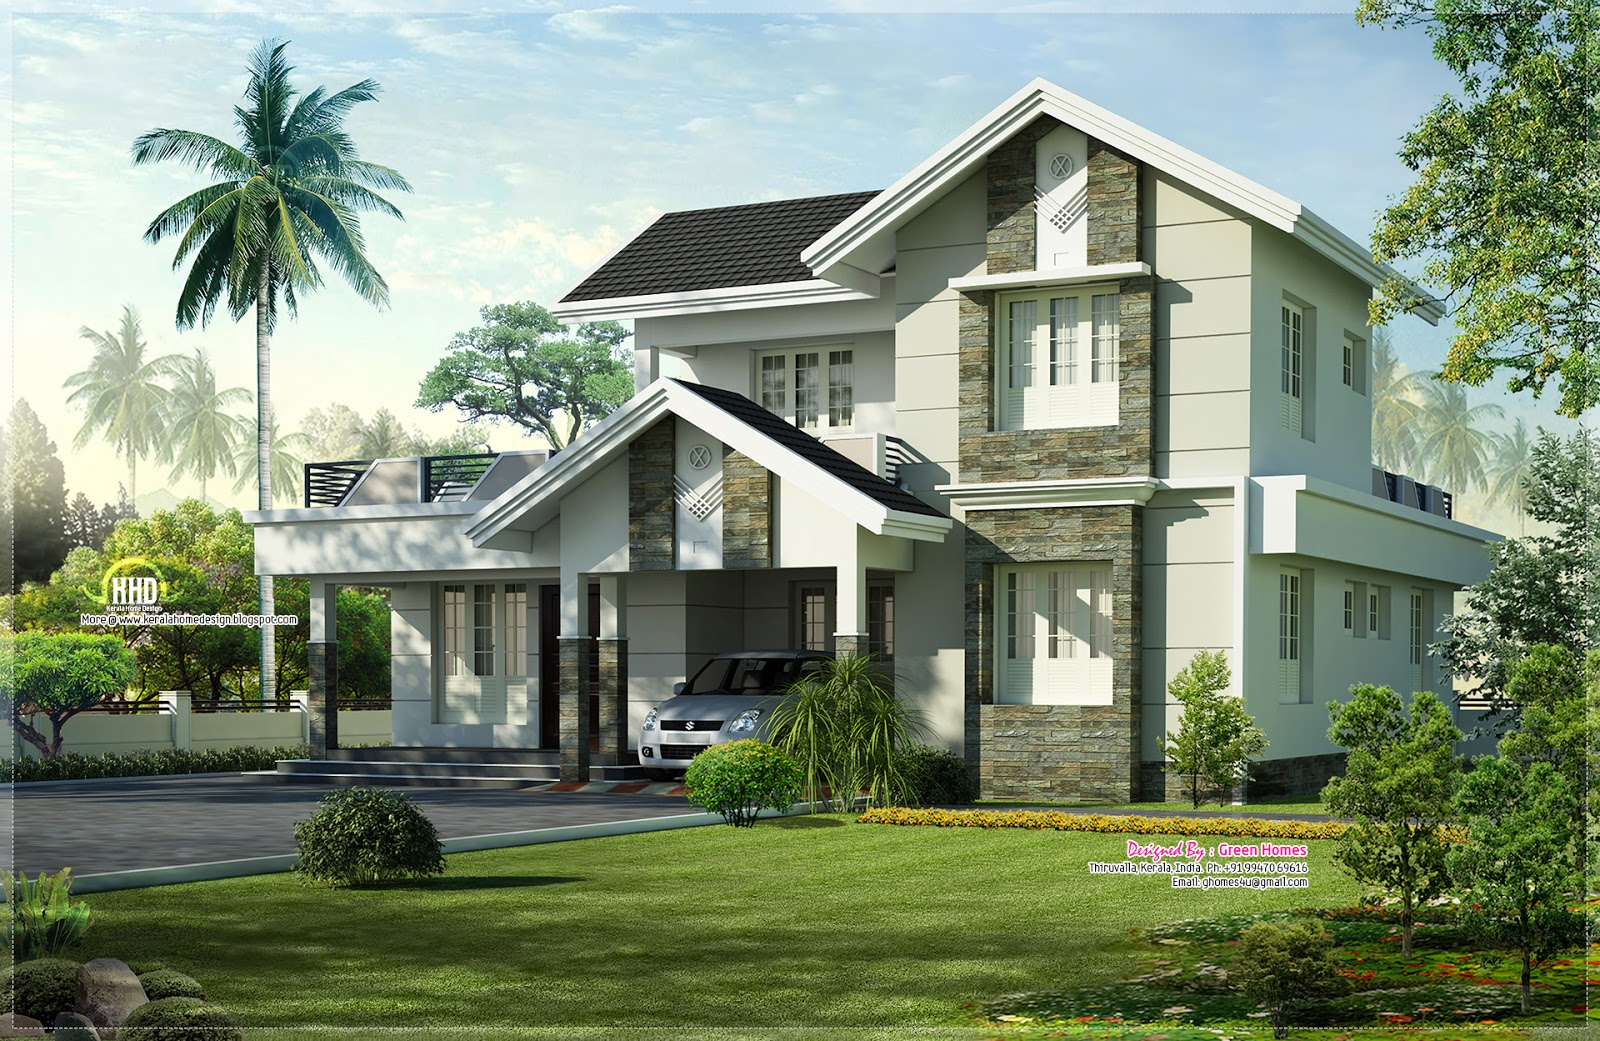 1975 nice home exterior design kerala home ForNice Home Design Pictures